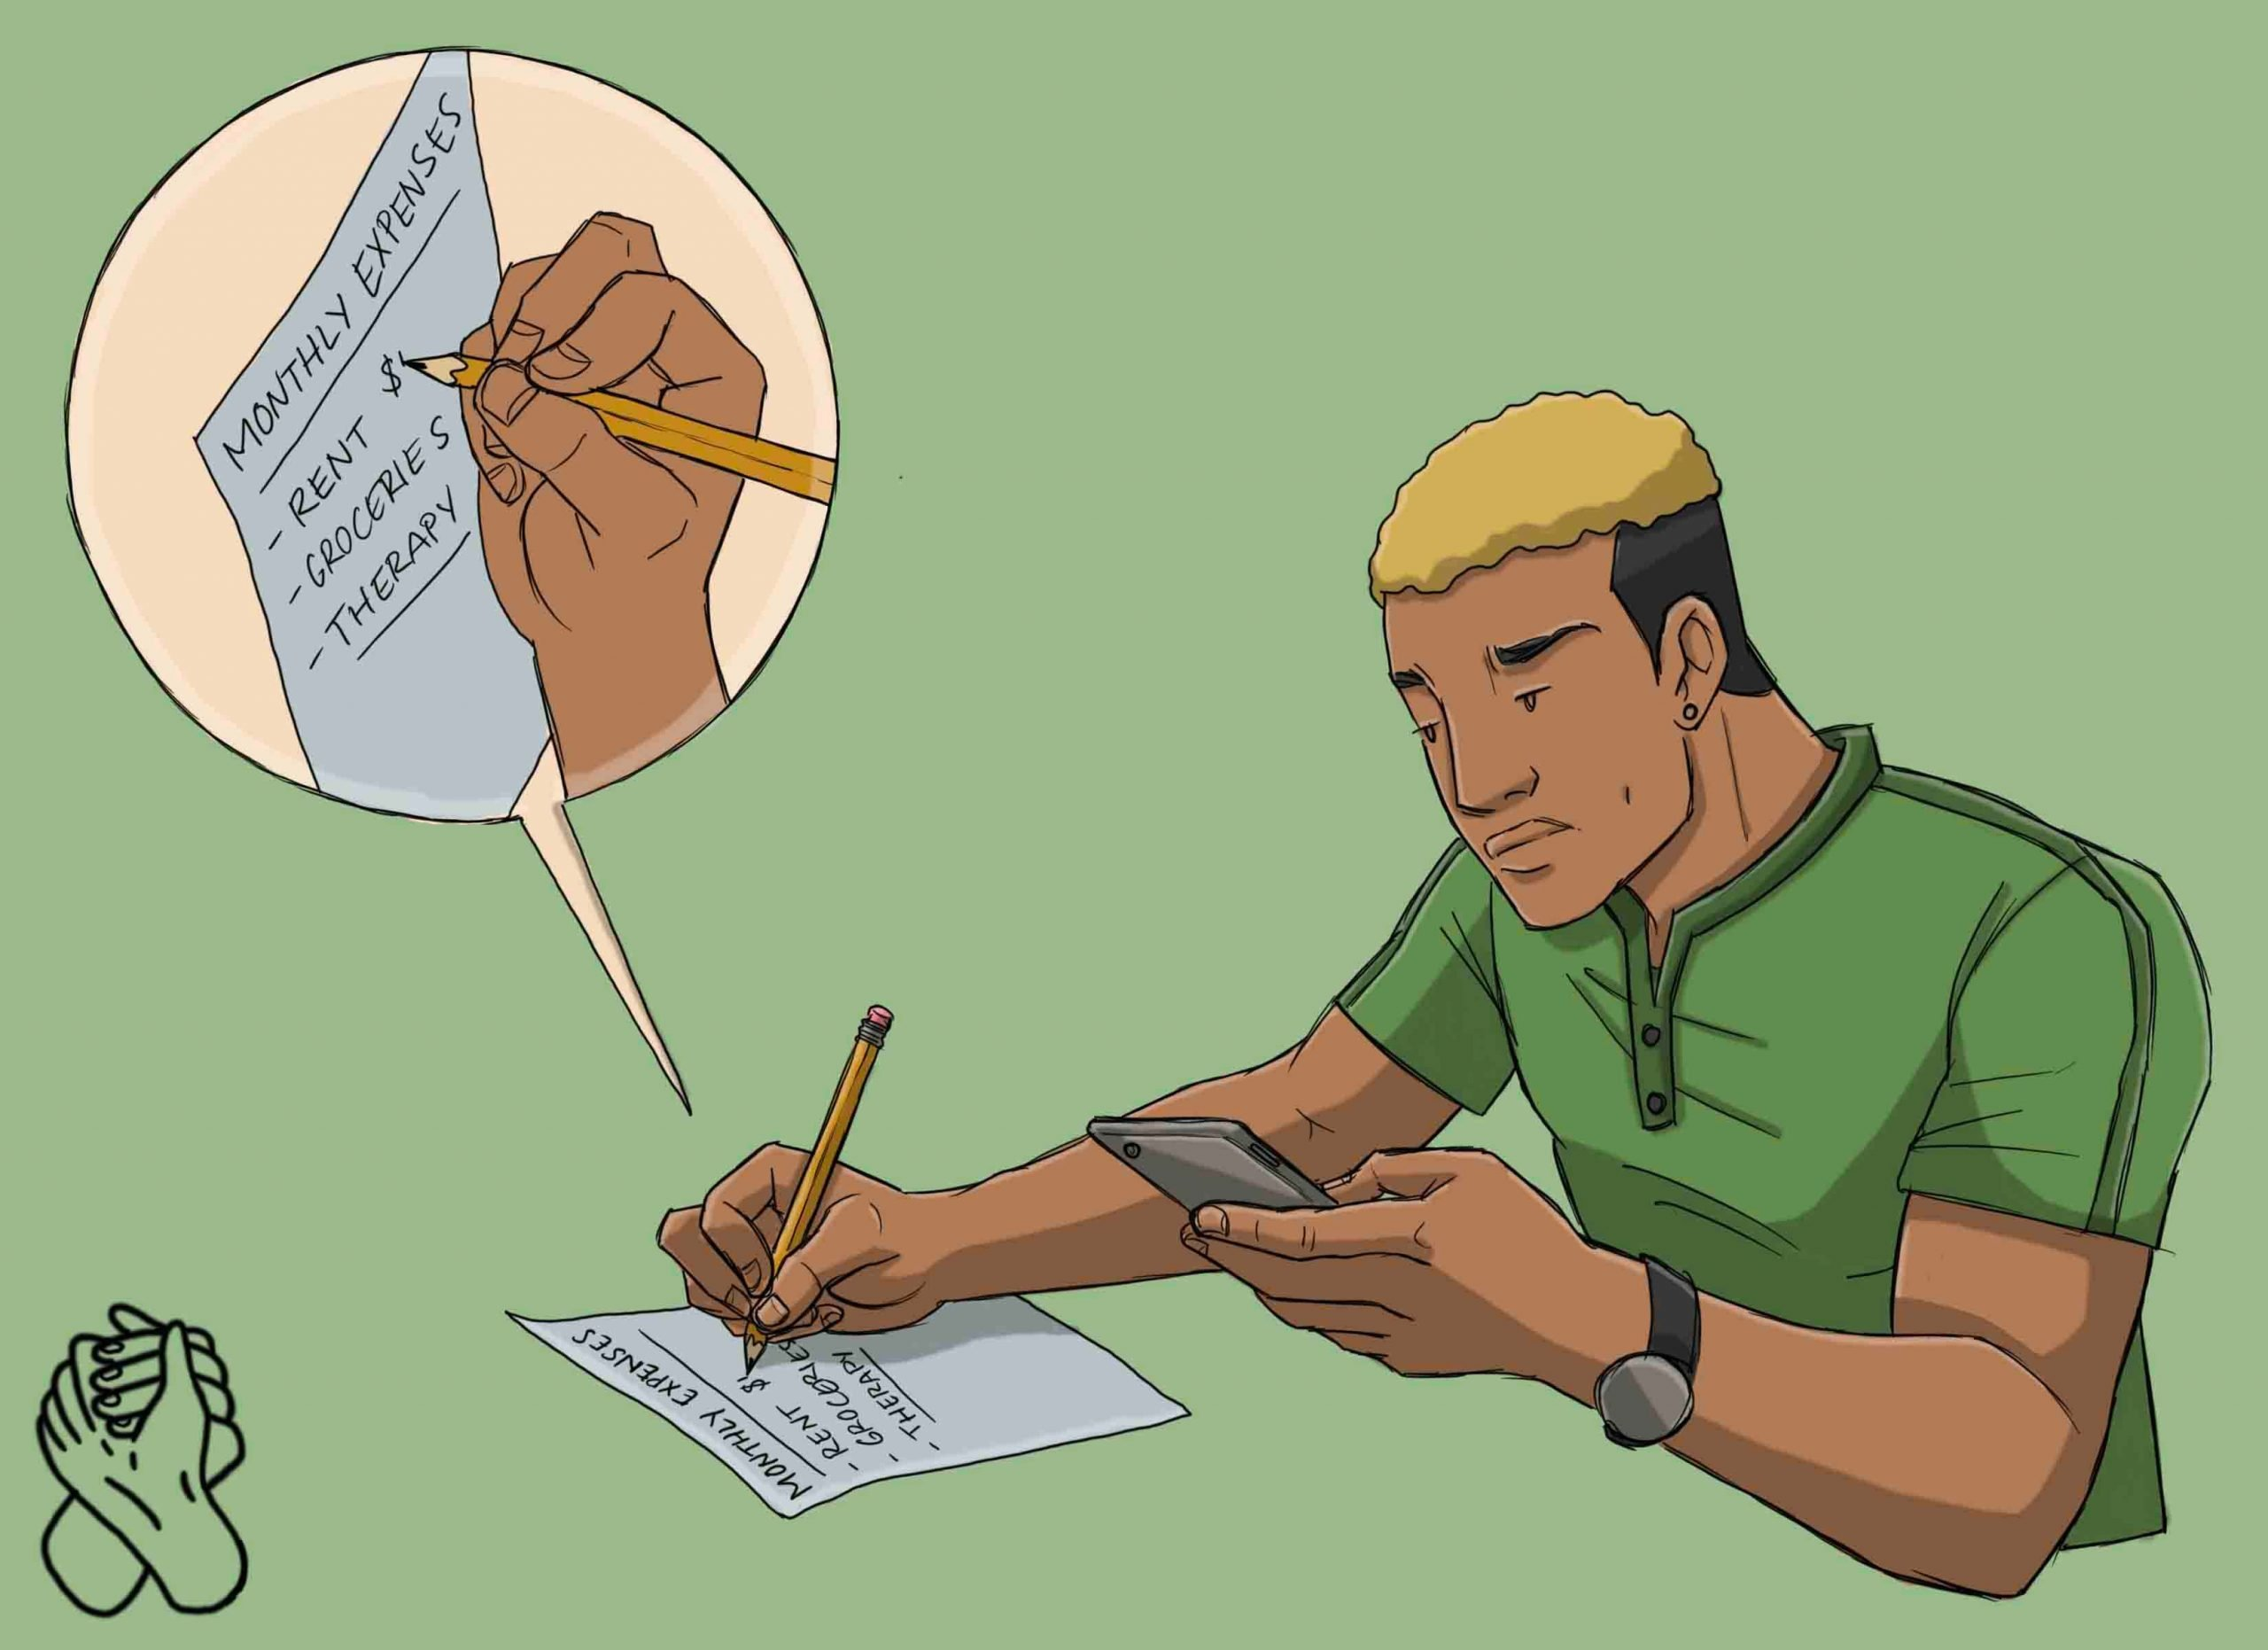 This is a drawing of a man preparing for an online therapy session